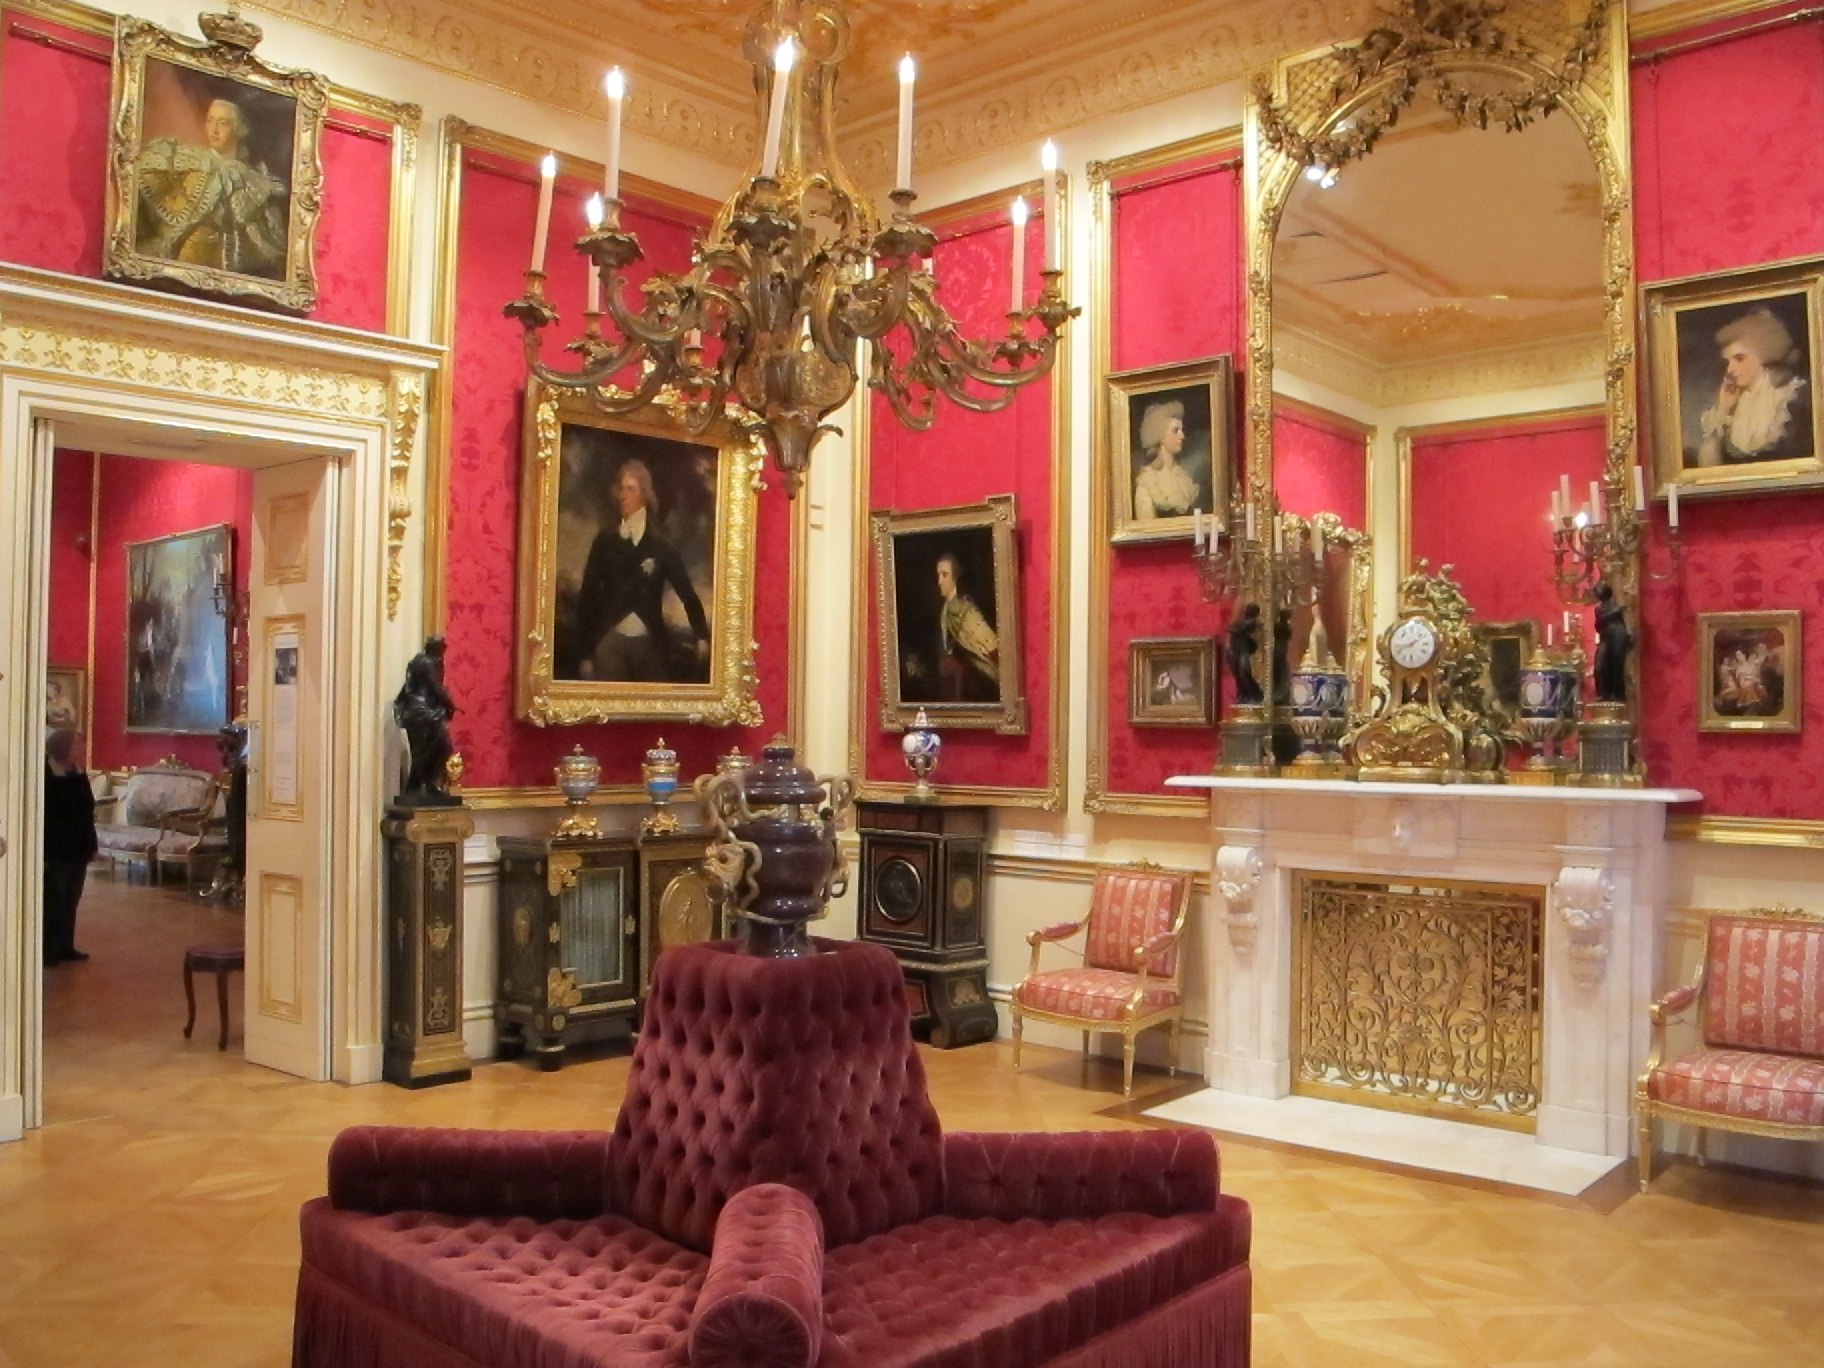 File:Wallace collection, interno.JPG - Wikimedia Commons